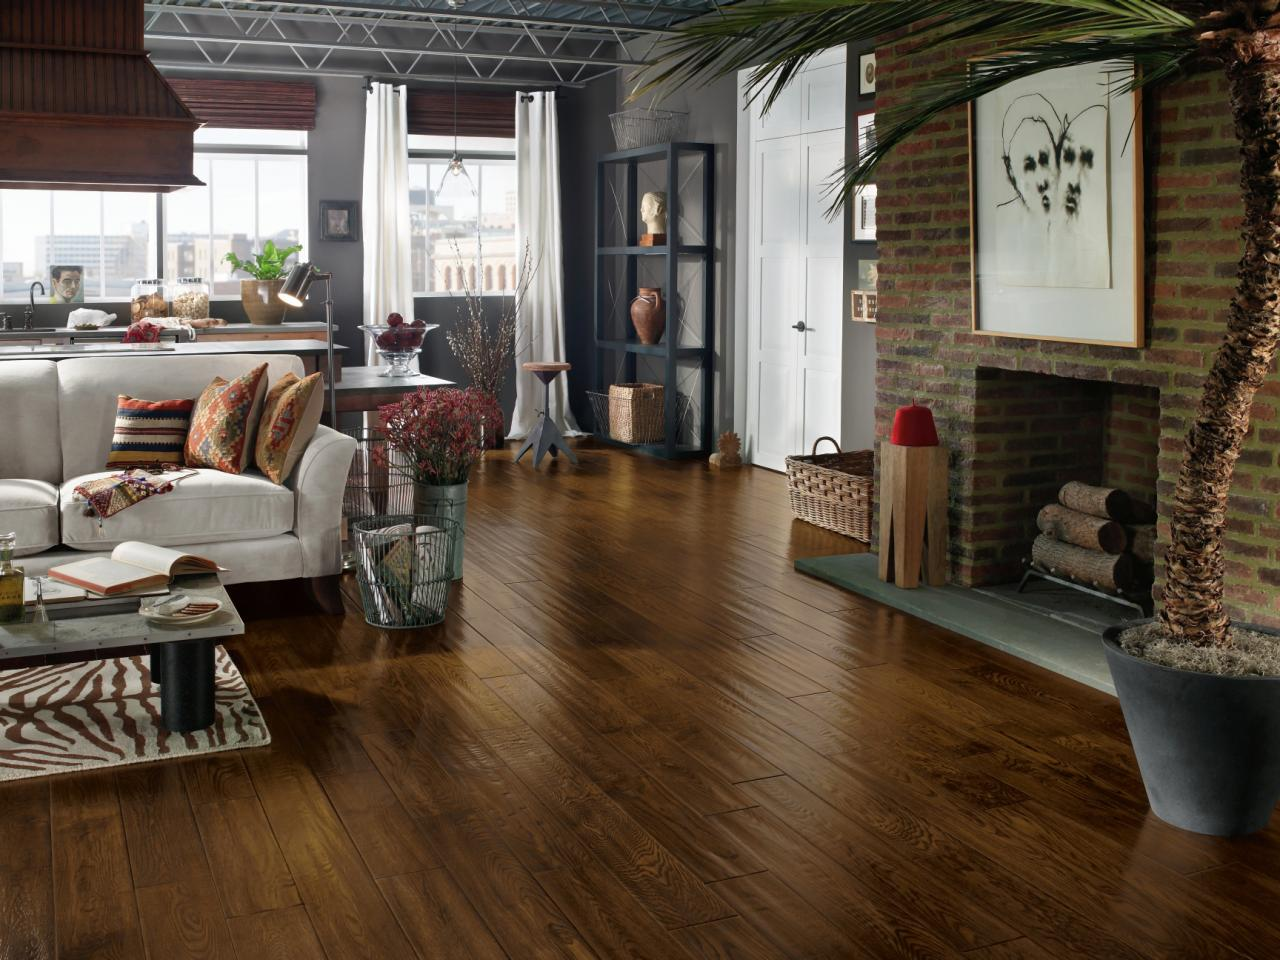 Wonderful Engineered Hardwood Flooring Pros And Cons For Home Interior With  Living Room Combined With Kitchen